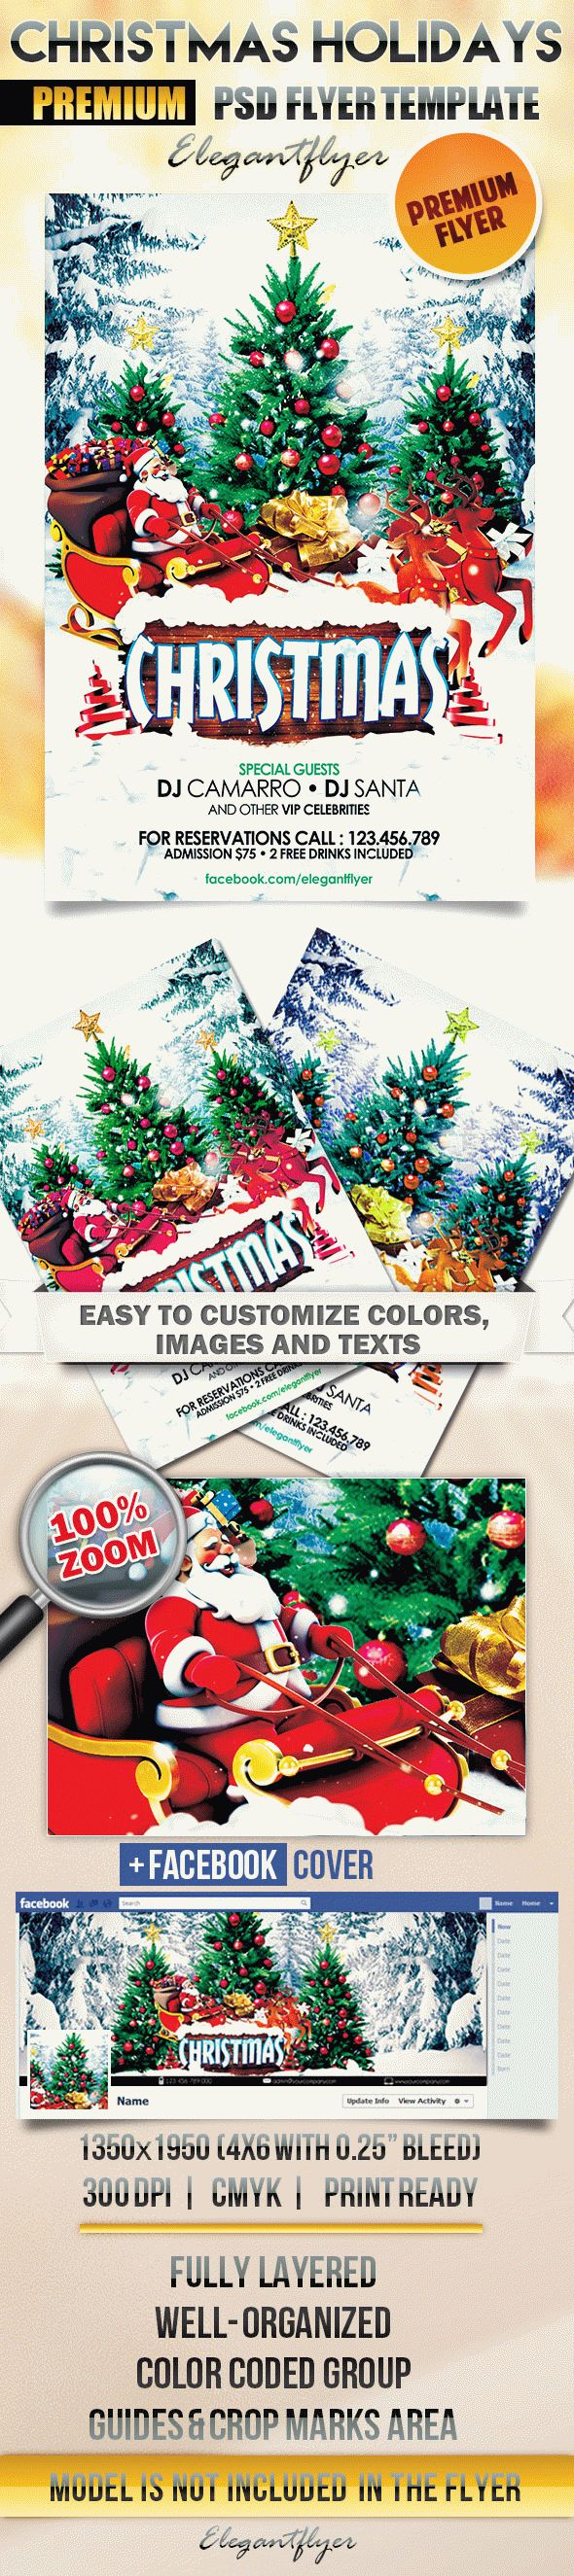 Christmas Holidays – Flyer PSD Template + Facebook Cover